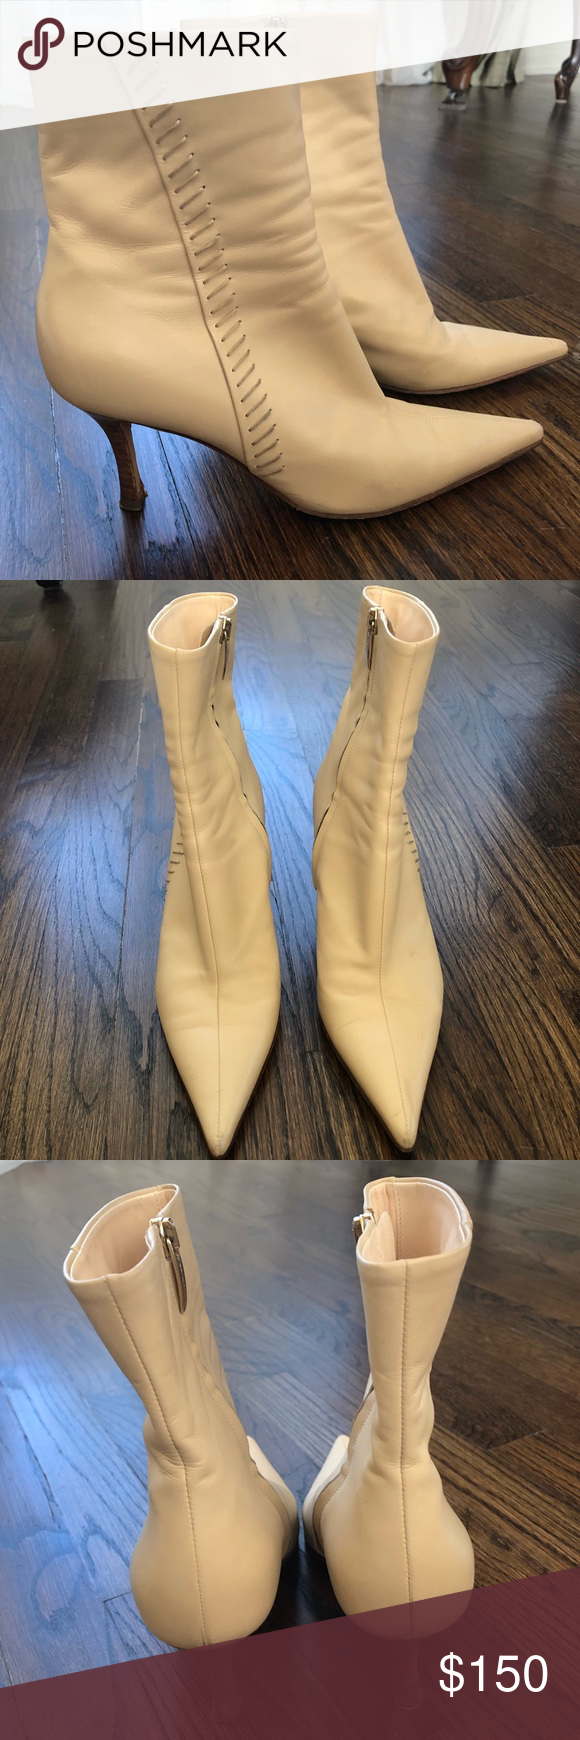 Sergio Rossi Leather Ankle Boots Size 36.5 Gorgeous Sergio Rossi Vero Cuoio off-white/cream point to...